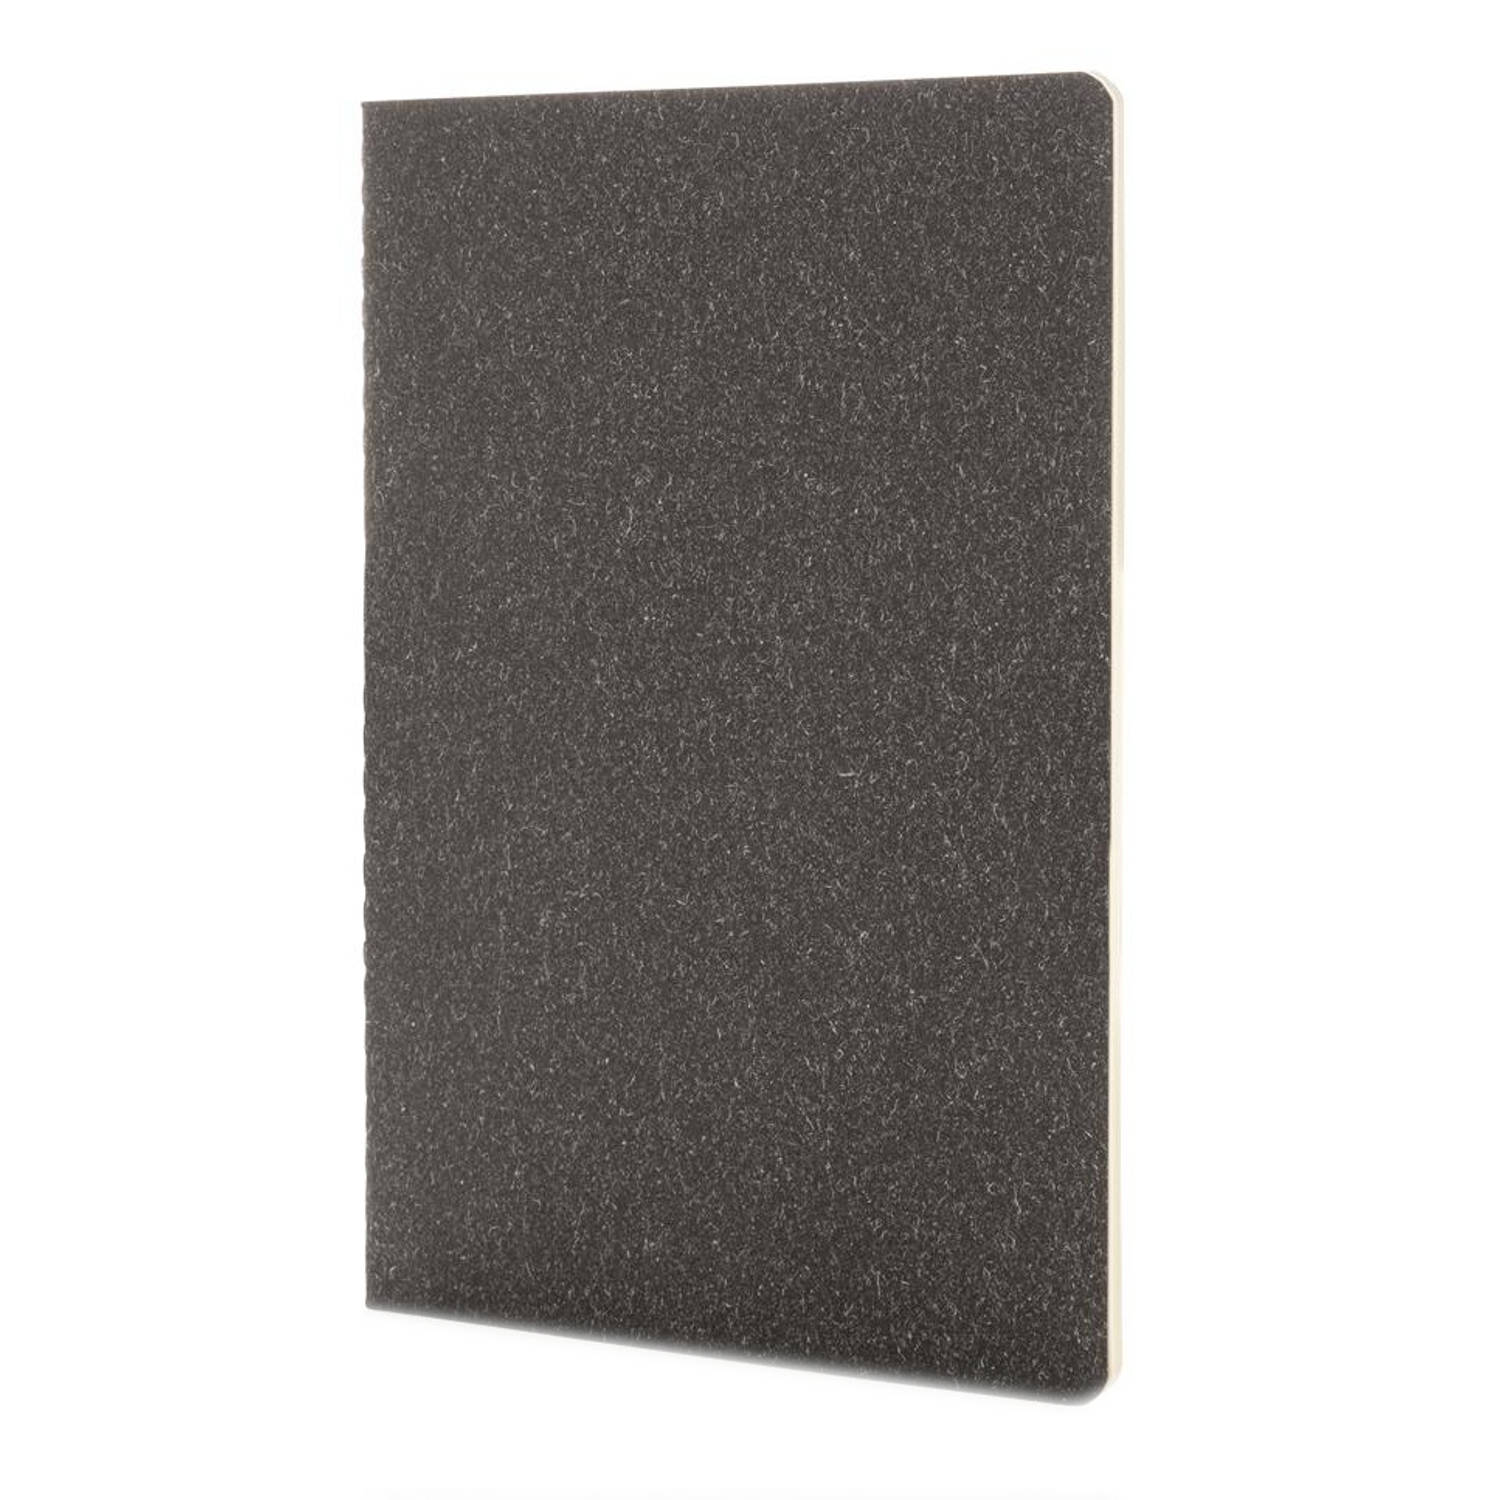 Korting Xd Collection Notitieboek Soft Cover Slim A5 Antraciet